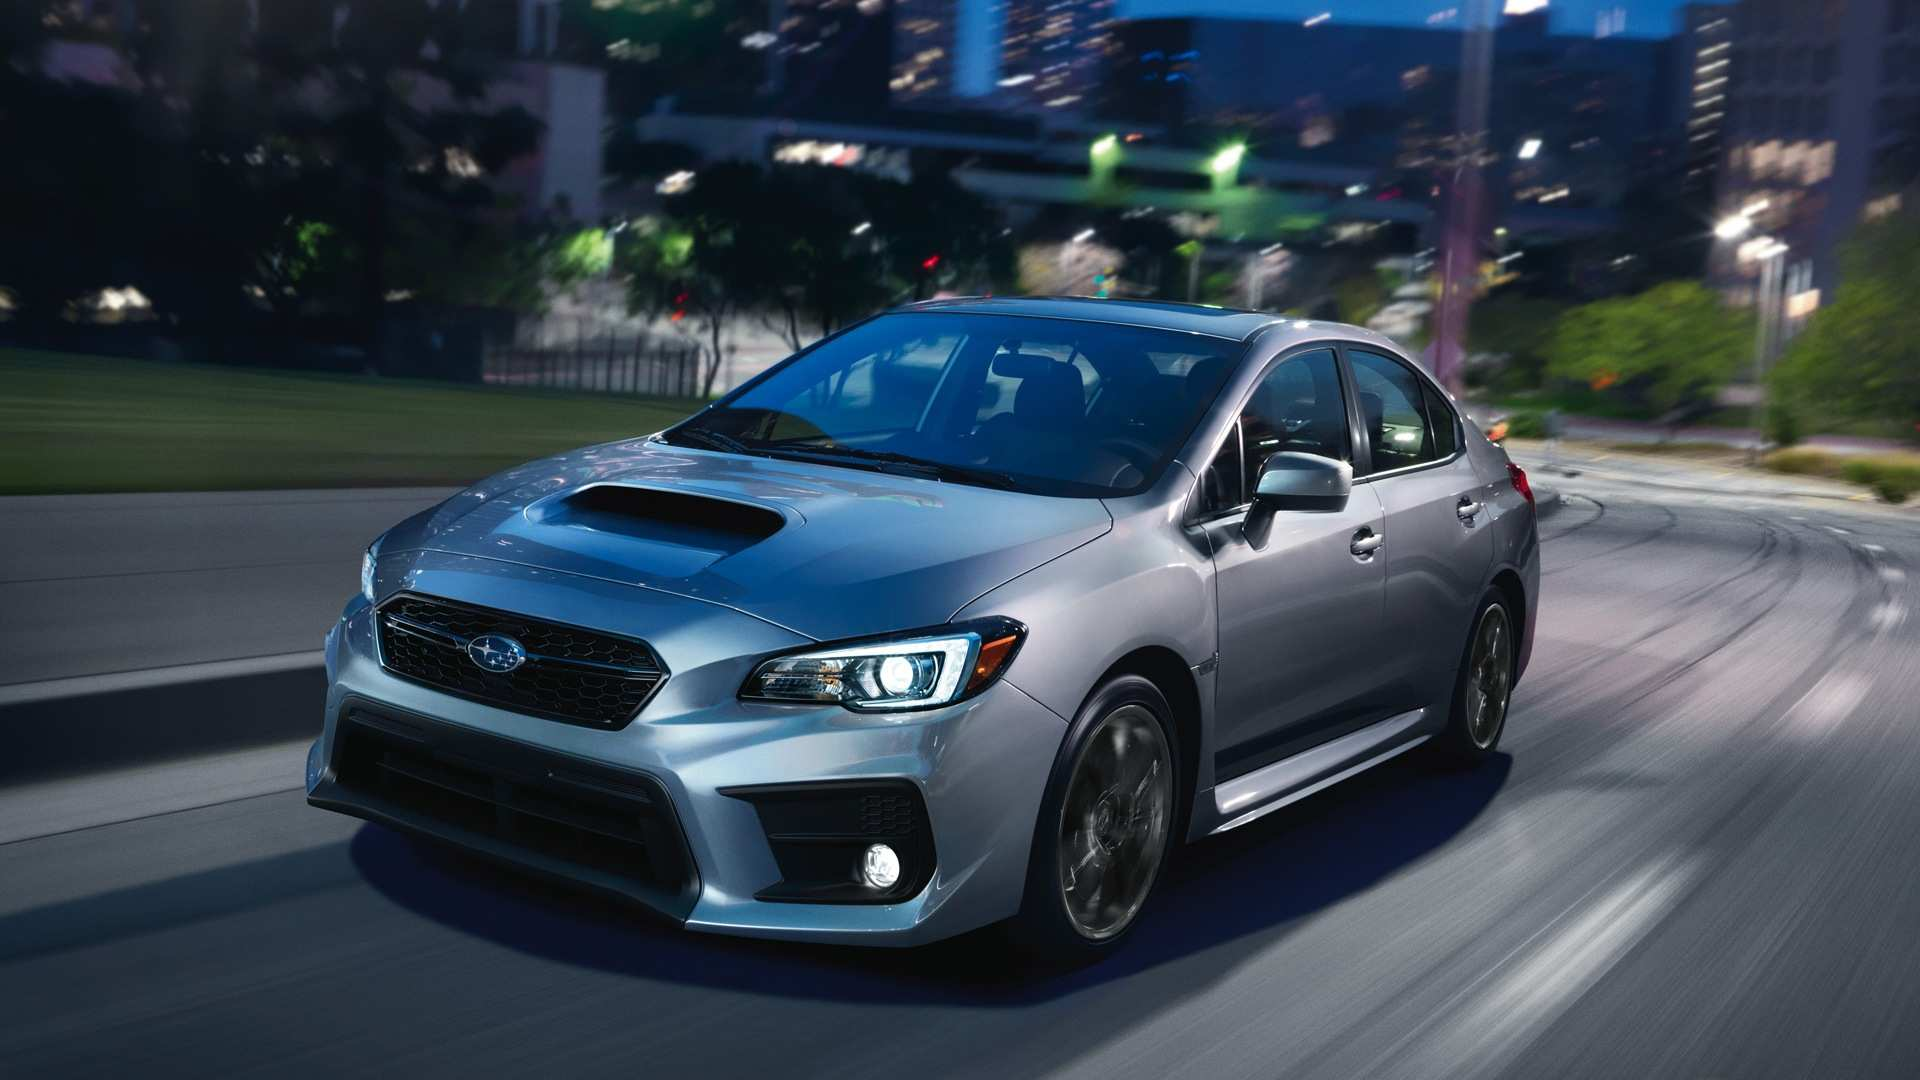 87 New Subaru Wrx 2020 Redesign Research New